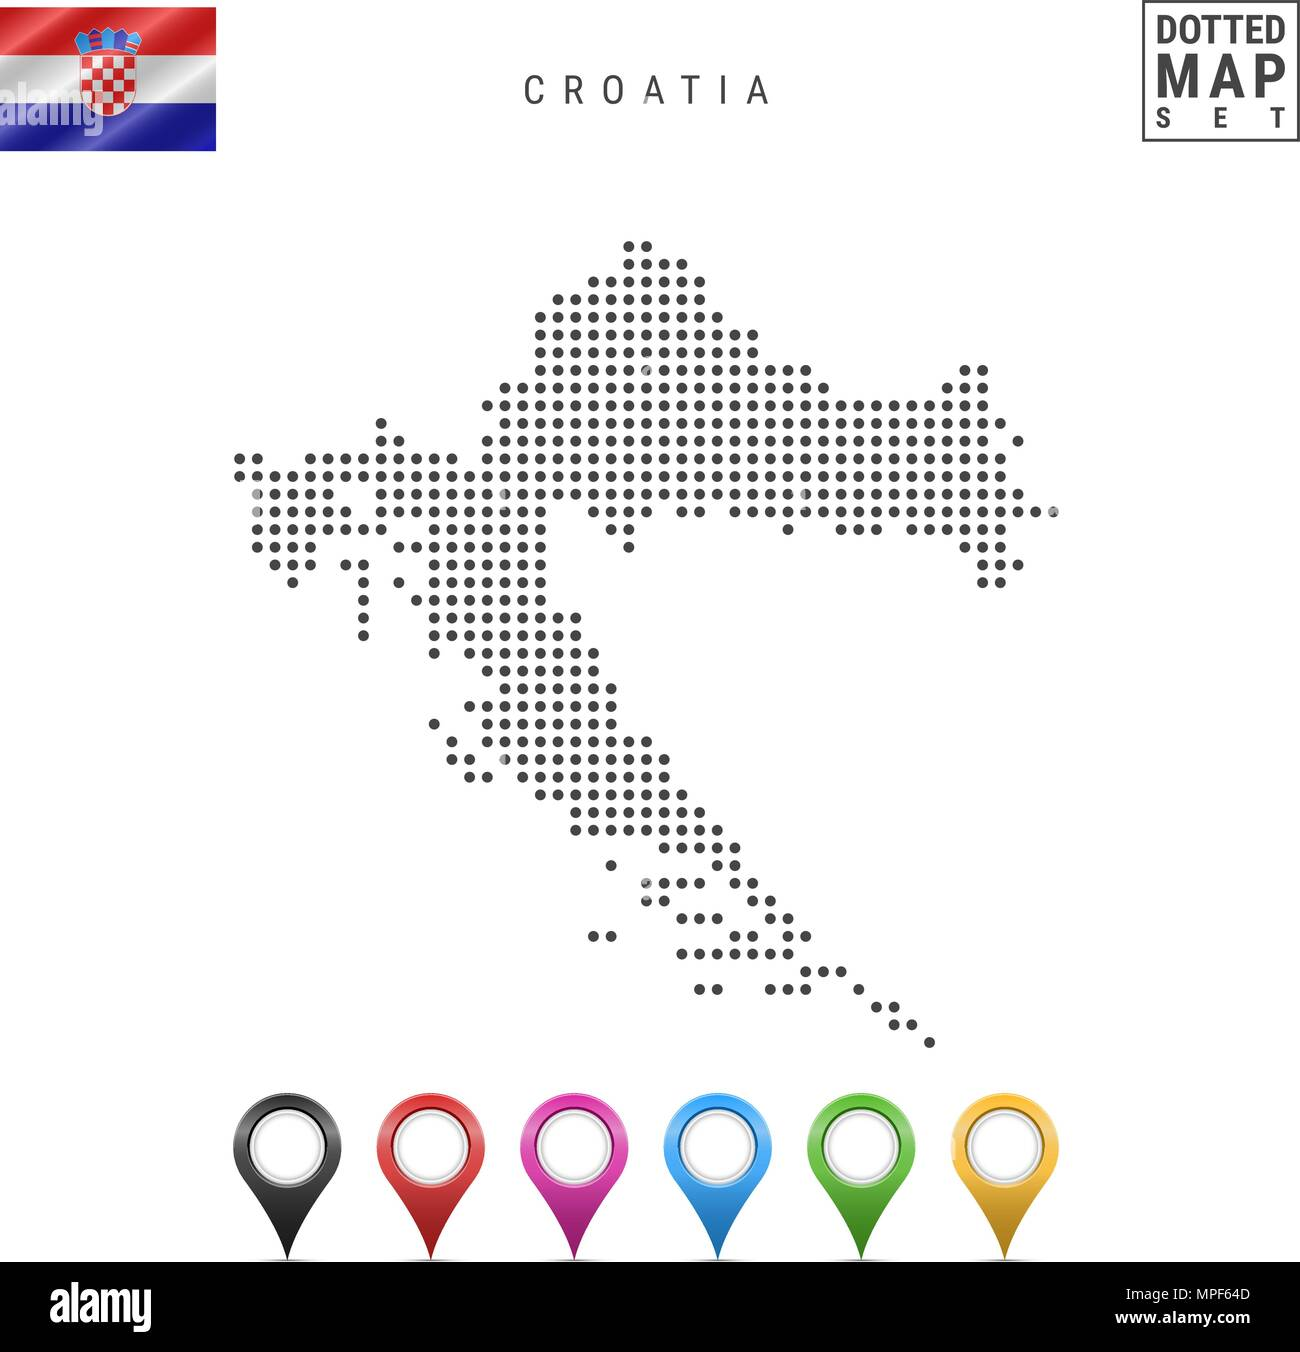 Vector Dotted Map of Croatia. Simple Silhouette of Croatia. National Flag of Croatia. Set of Multicolored Map Markers - Stock Image